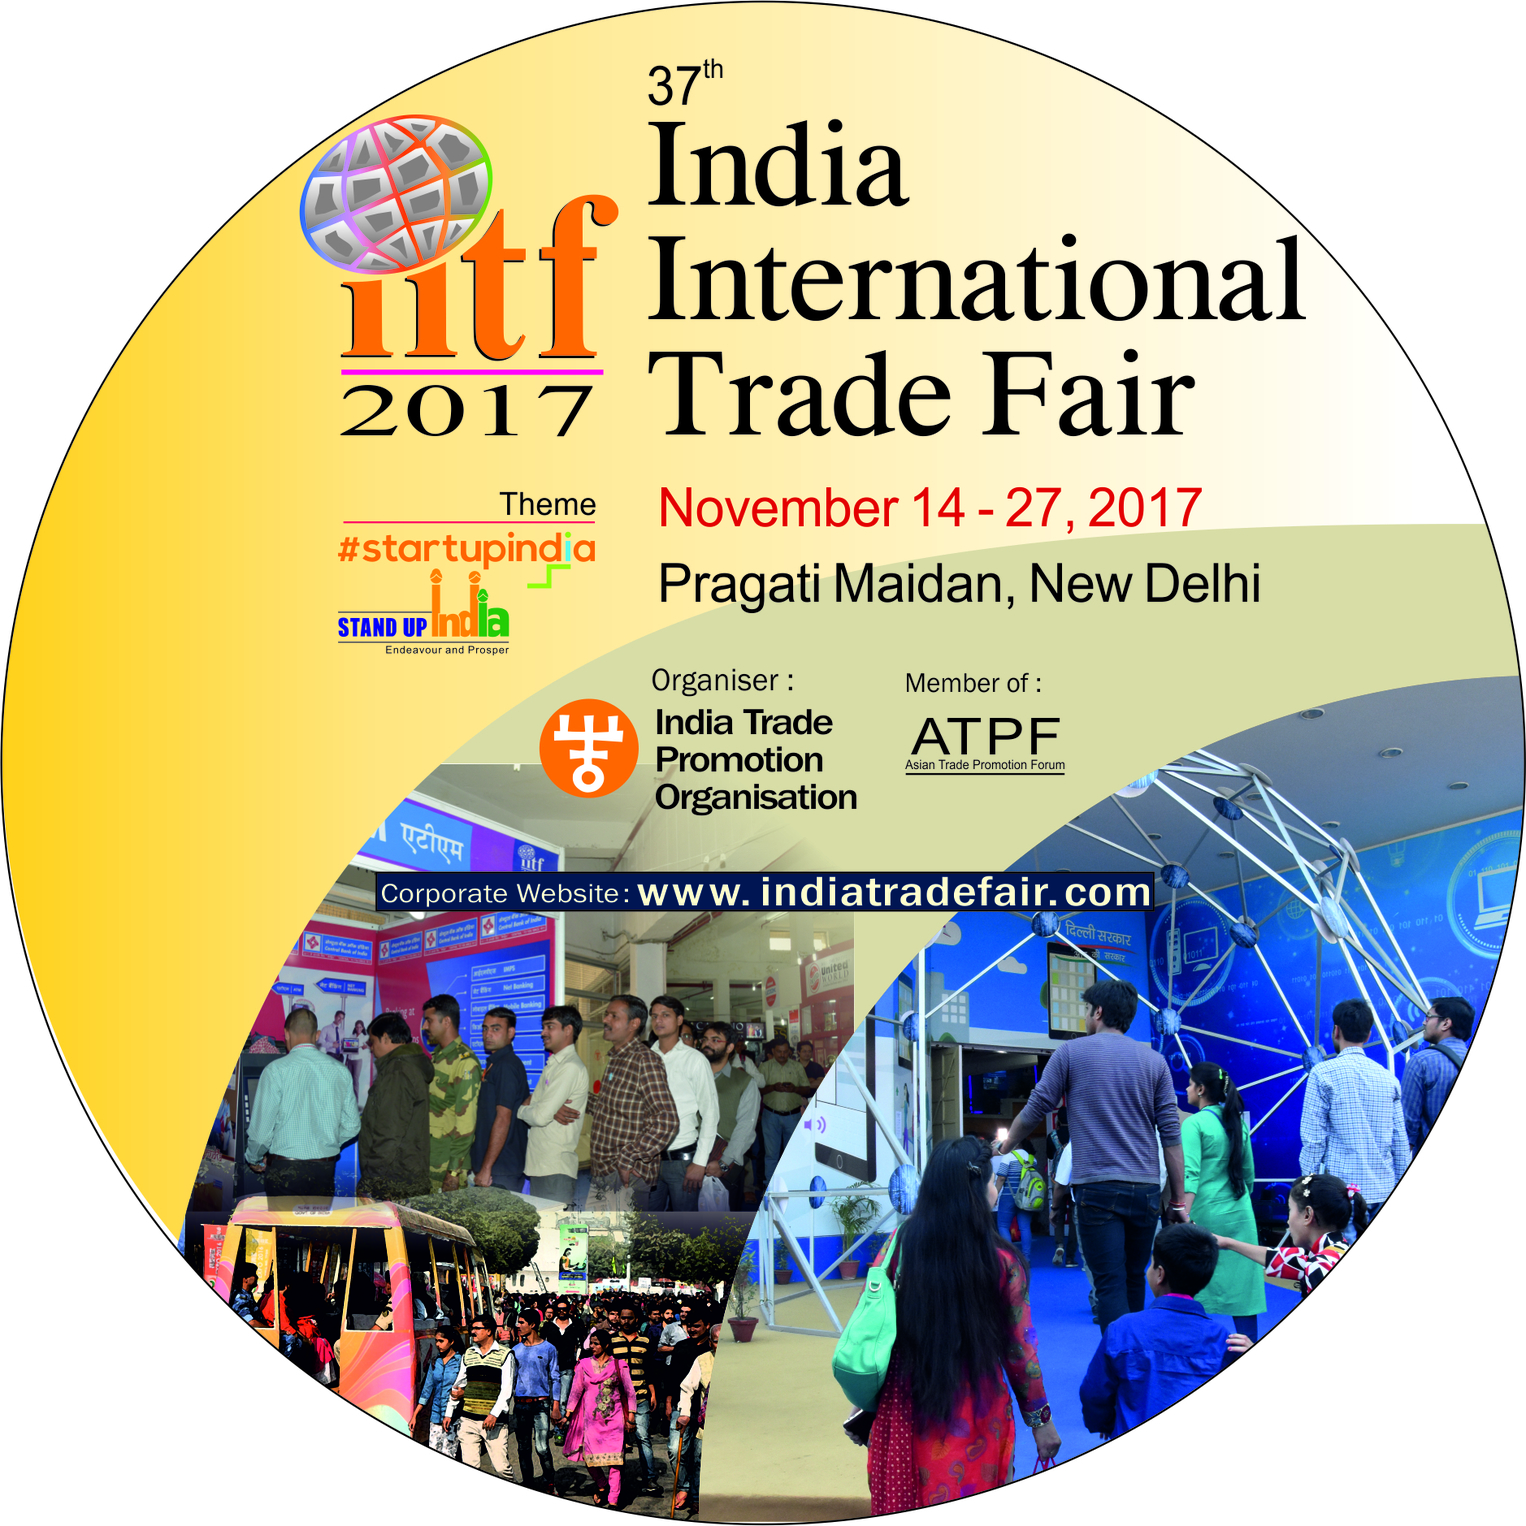 Expo Stands Trade Fair 2017 : Itpo iitf